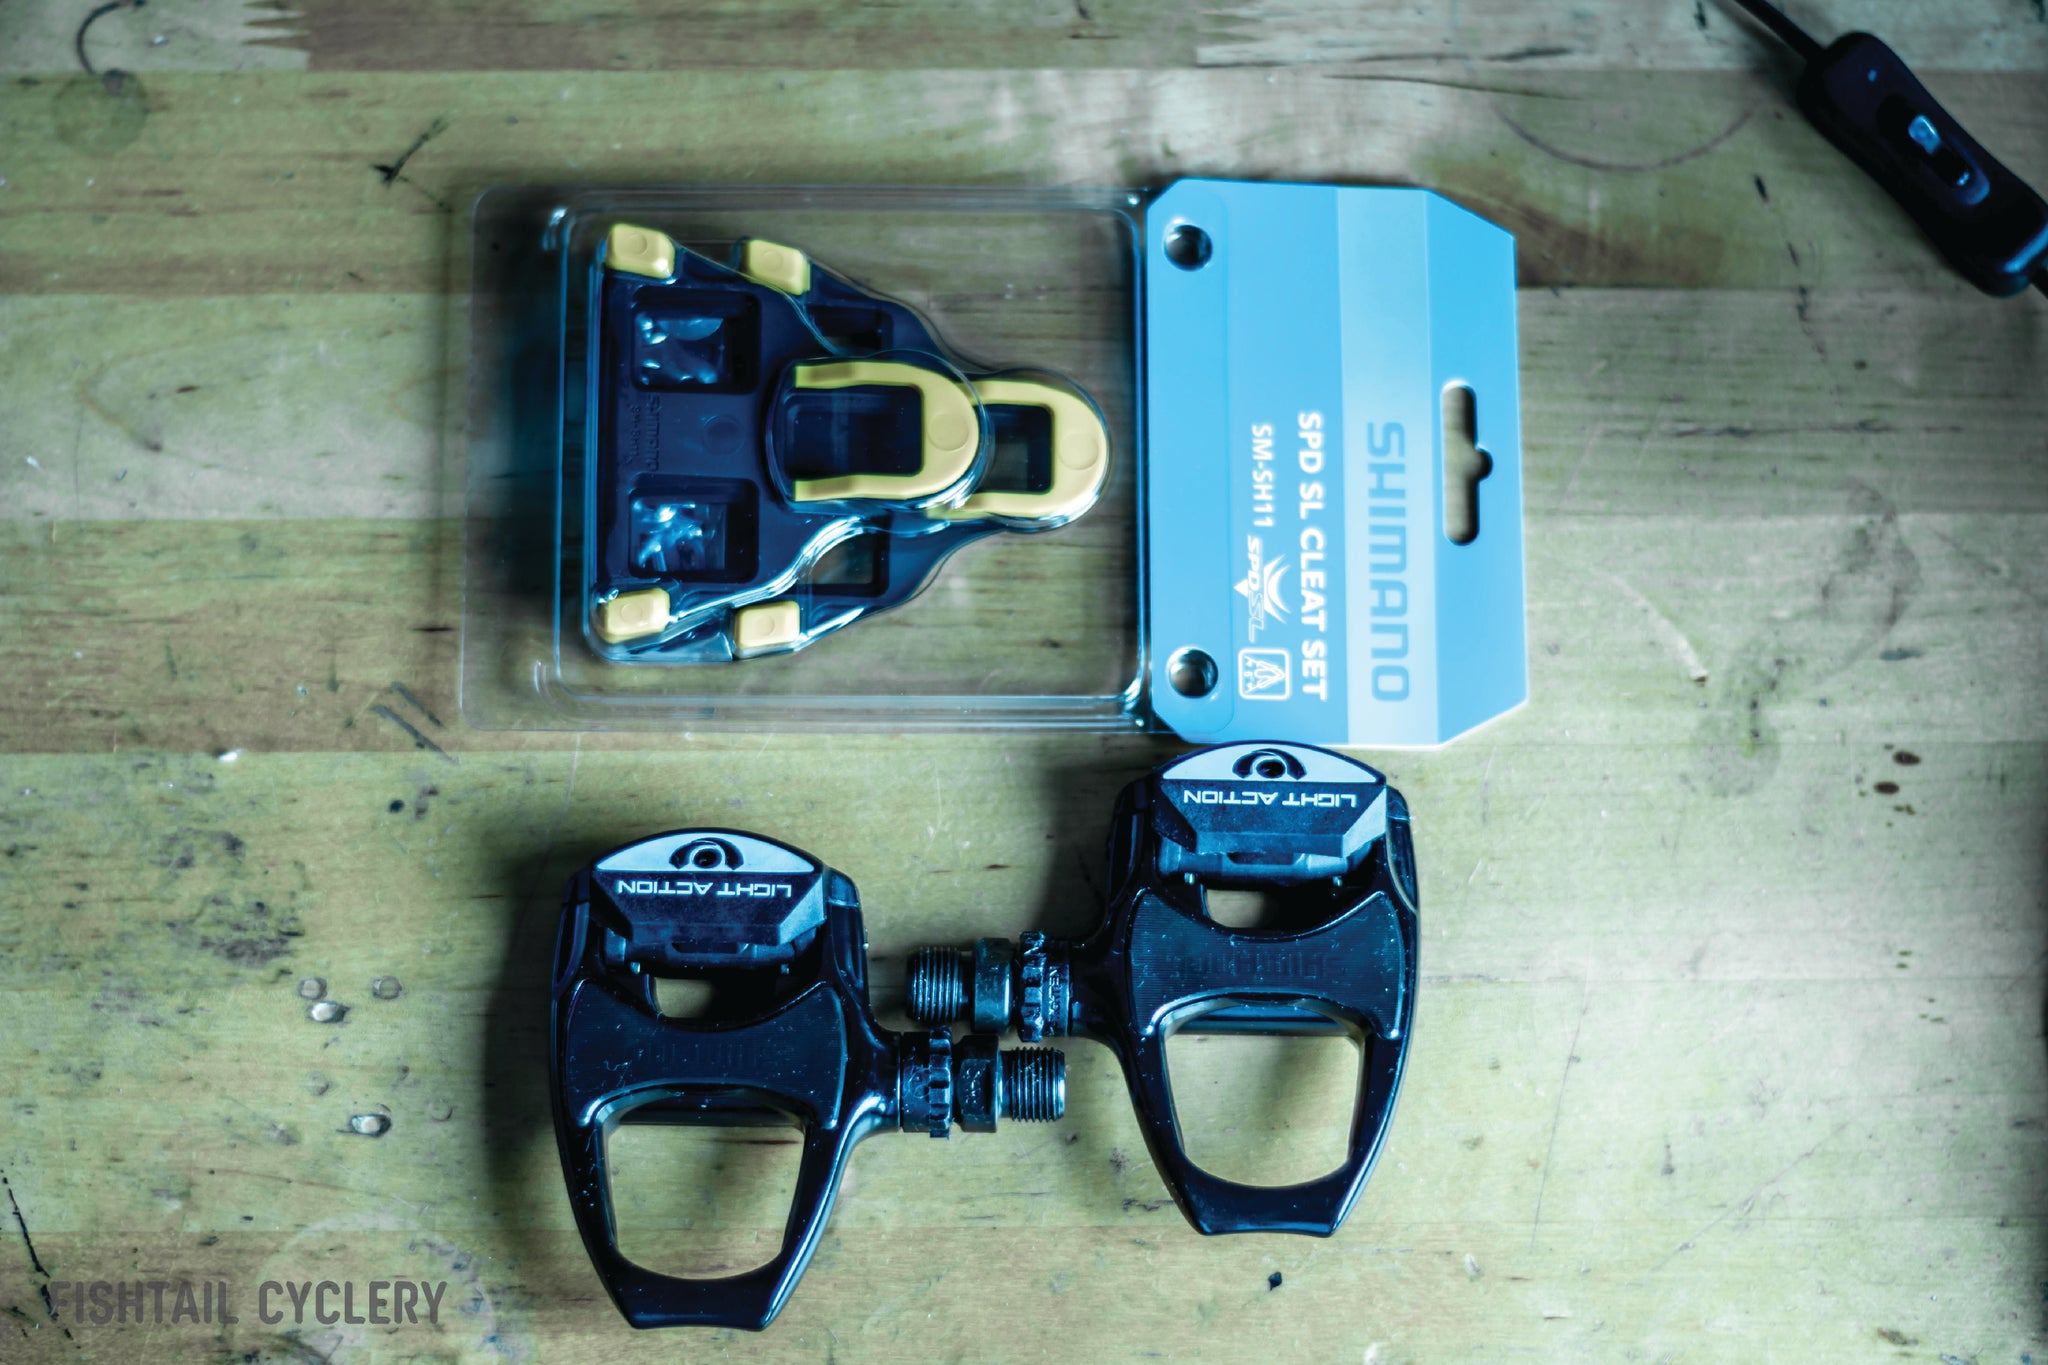 Shimano R550 SPD-SL Clipless Road Pedals with Cleat Set - FISHTAIL CYCLERY